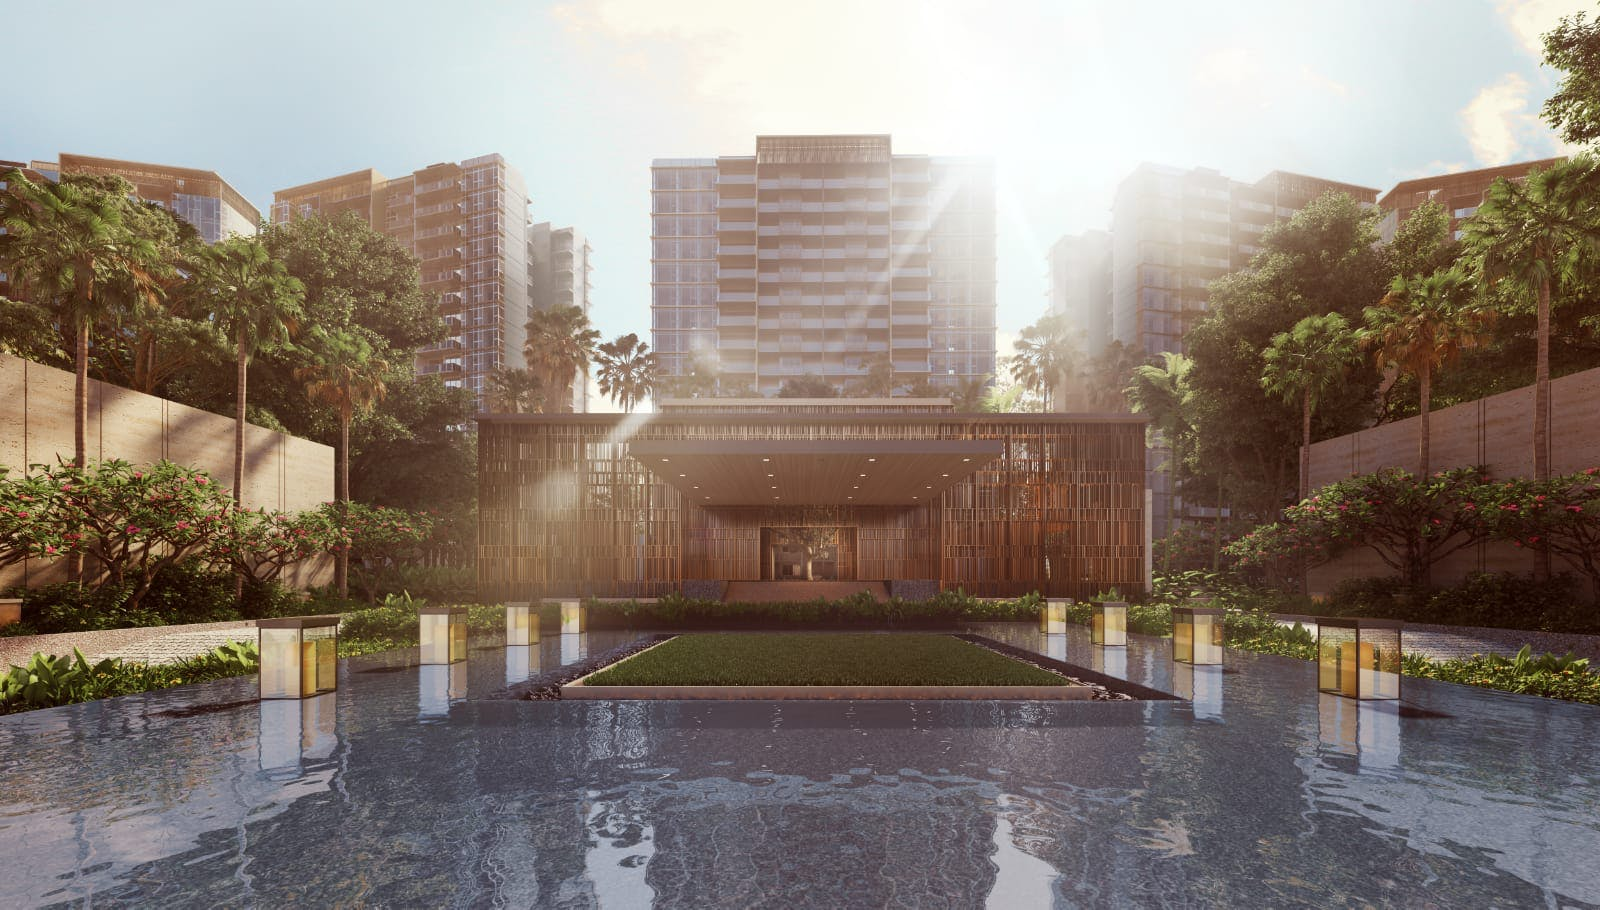 Artists' impression of Parc Esta